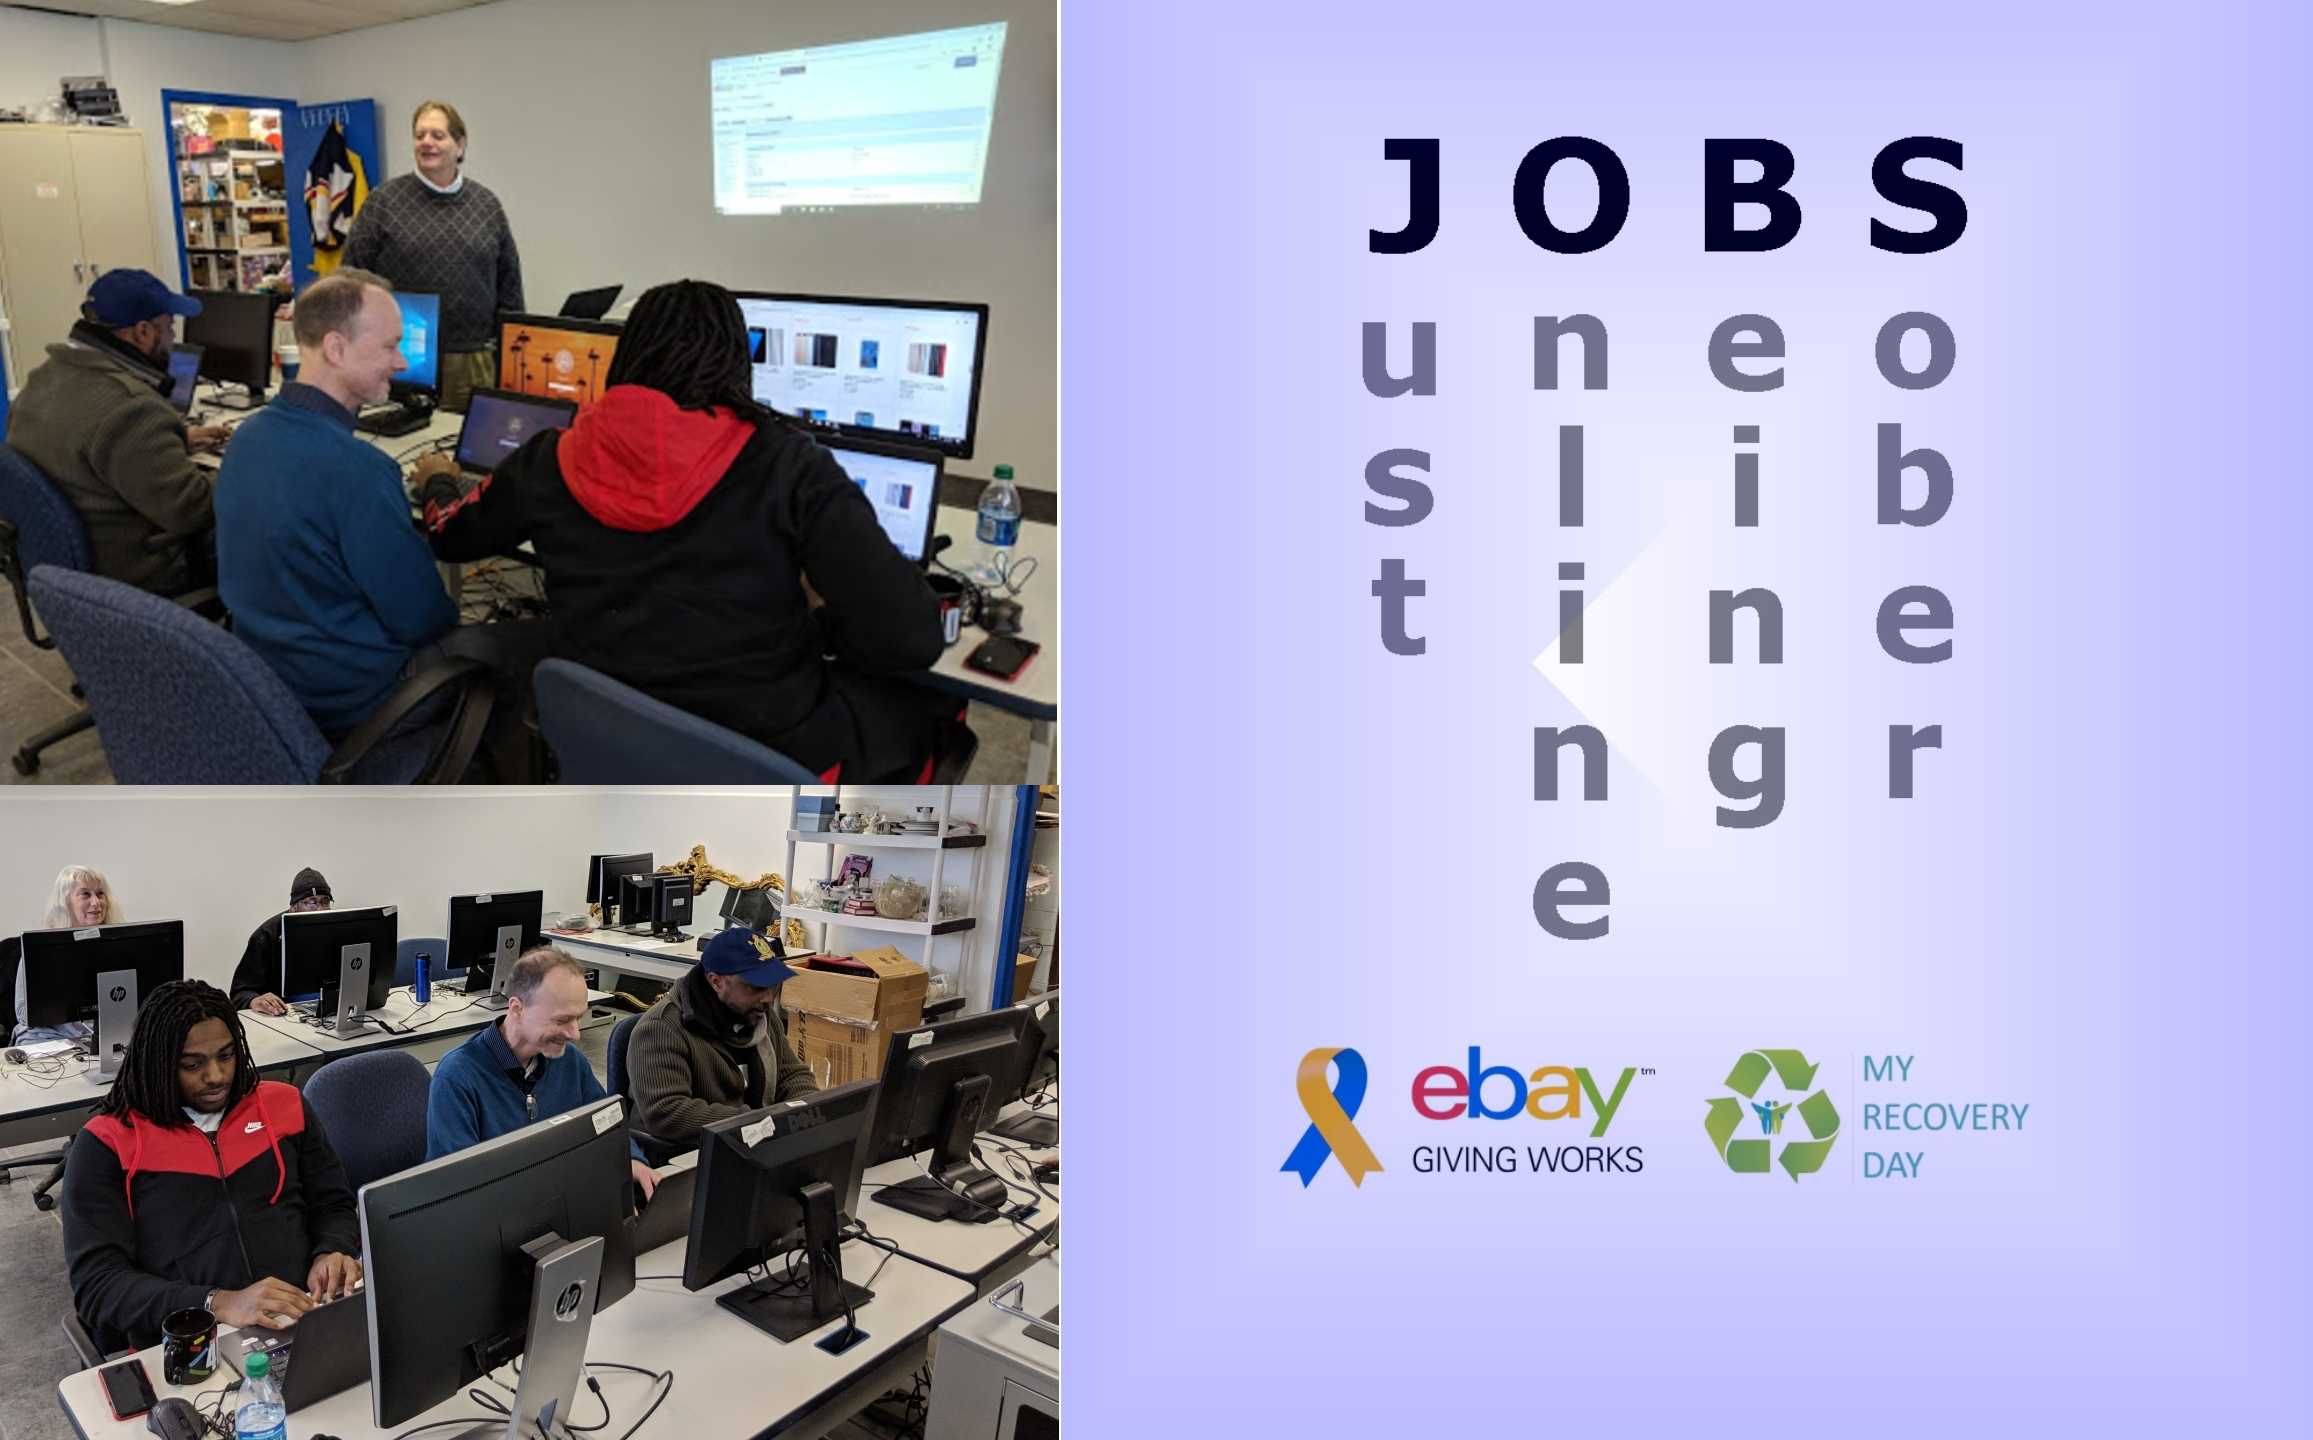 The JOBS Program